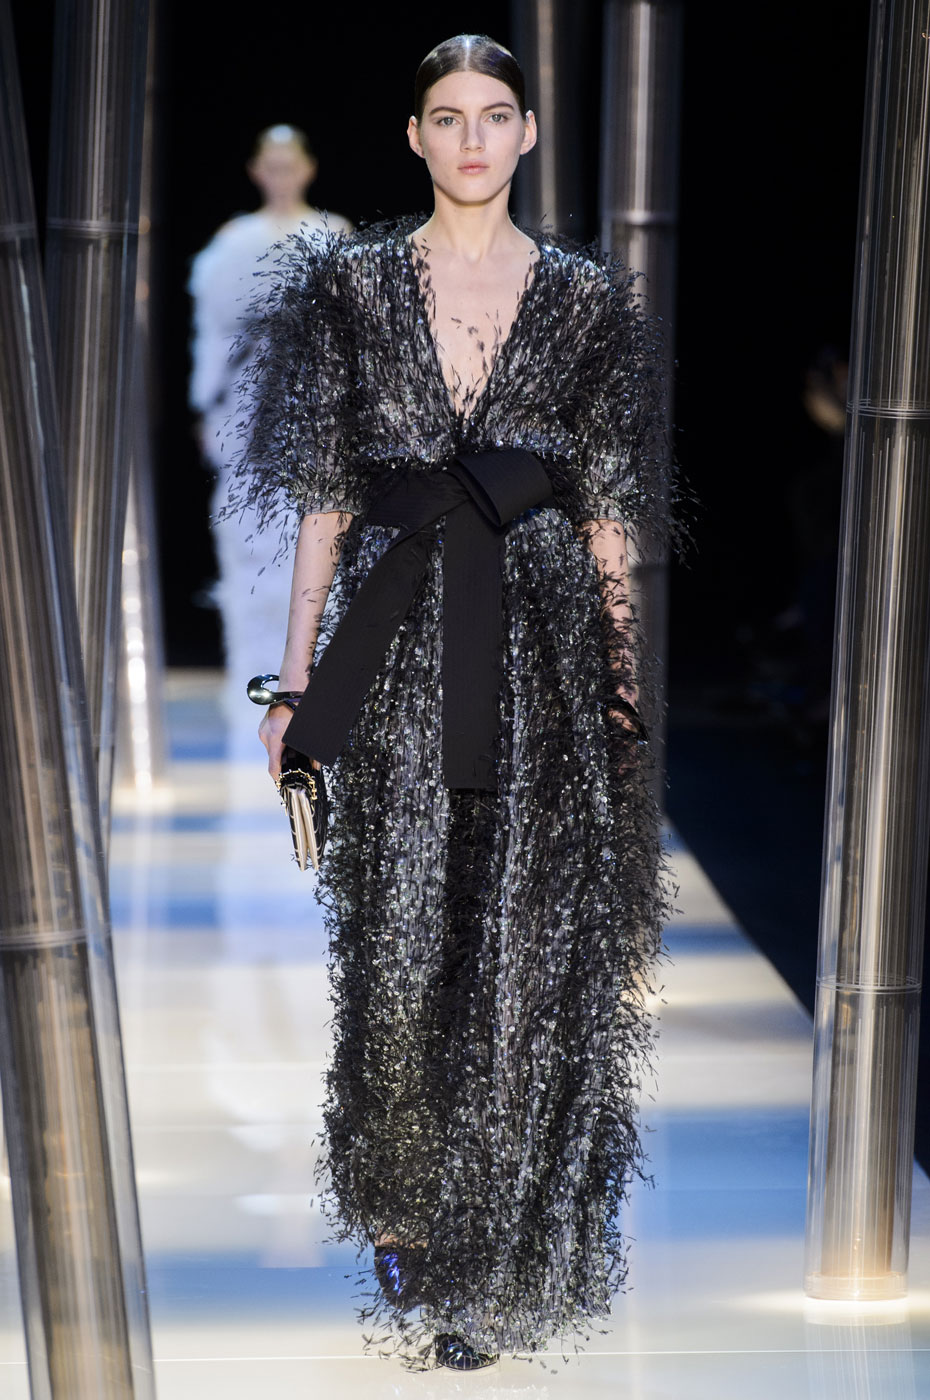 Giorgio-armani-Prive-fashion-runway-show-haute-couture-paris-spring-2015-the-impression-109